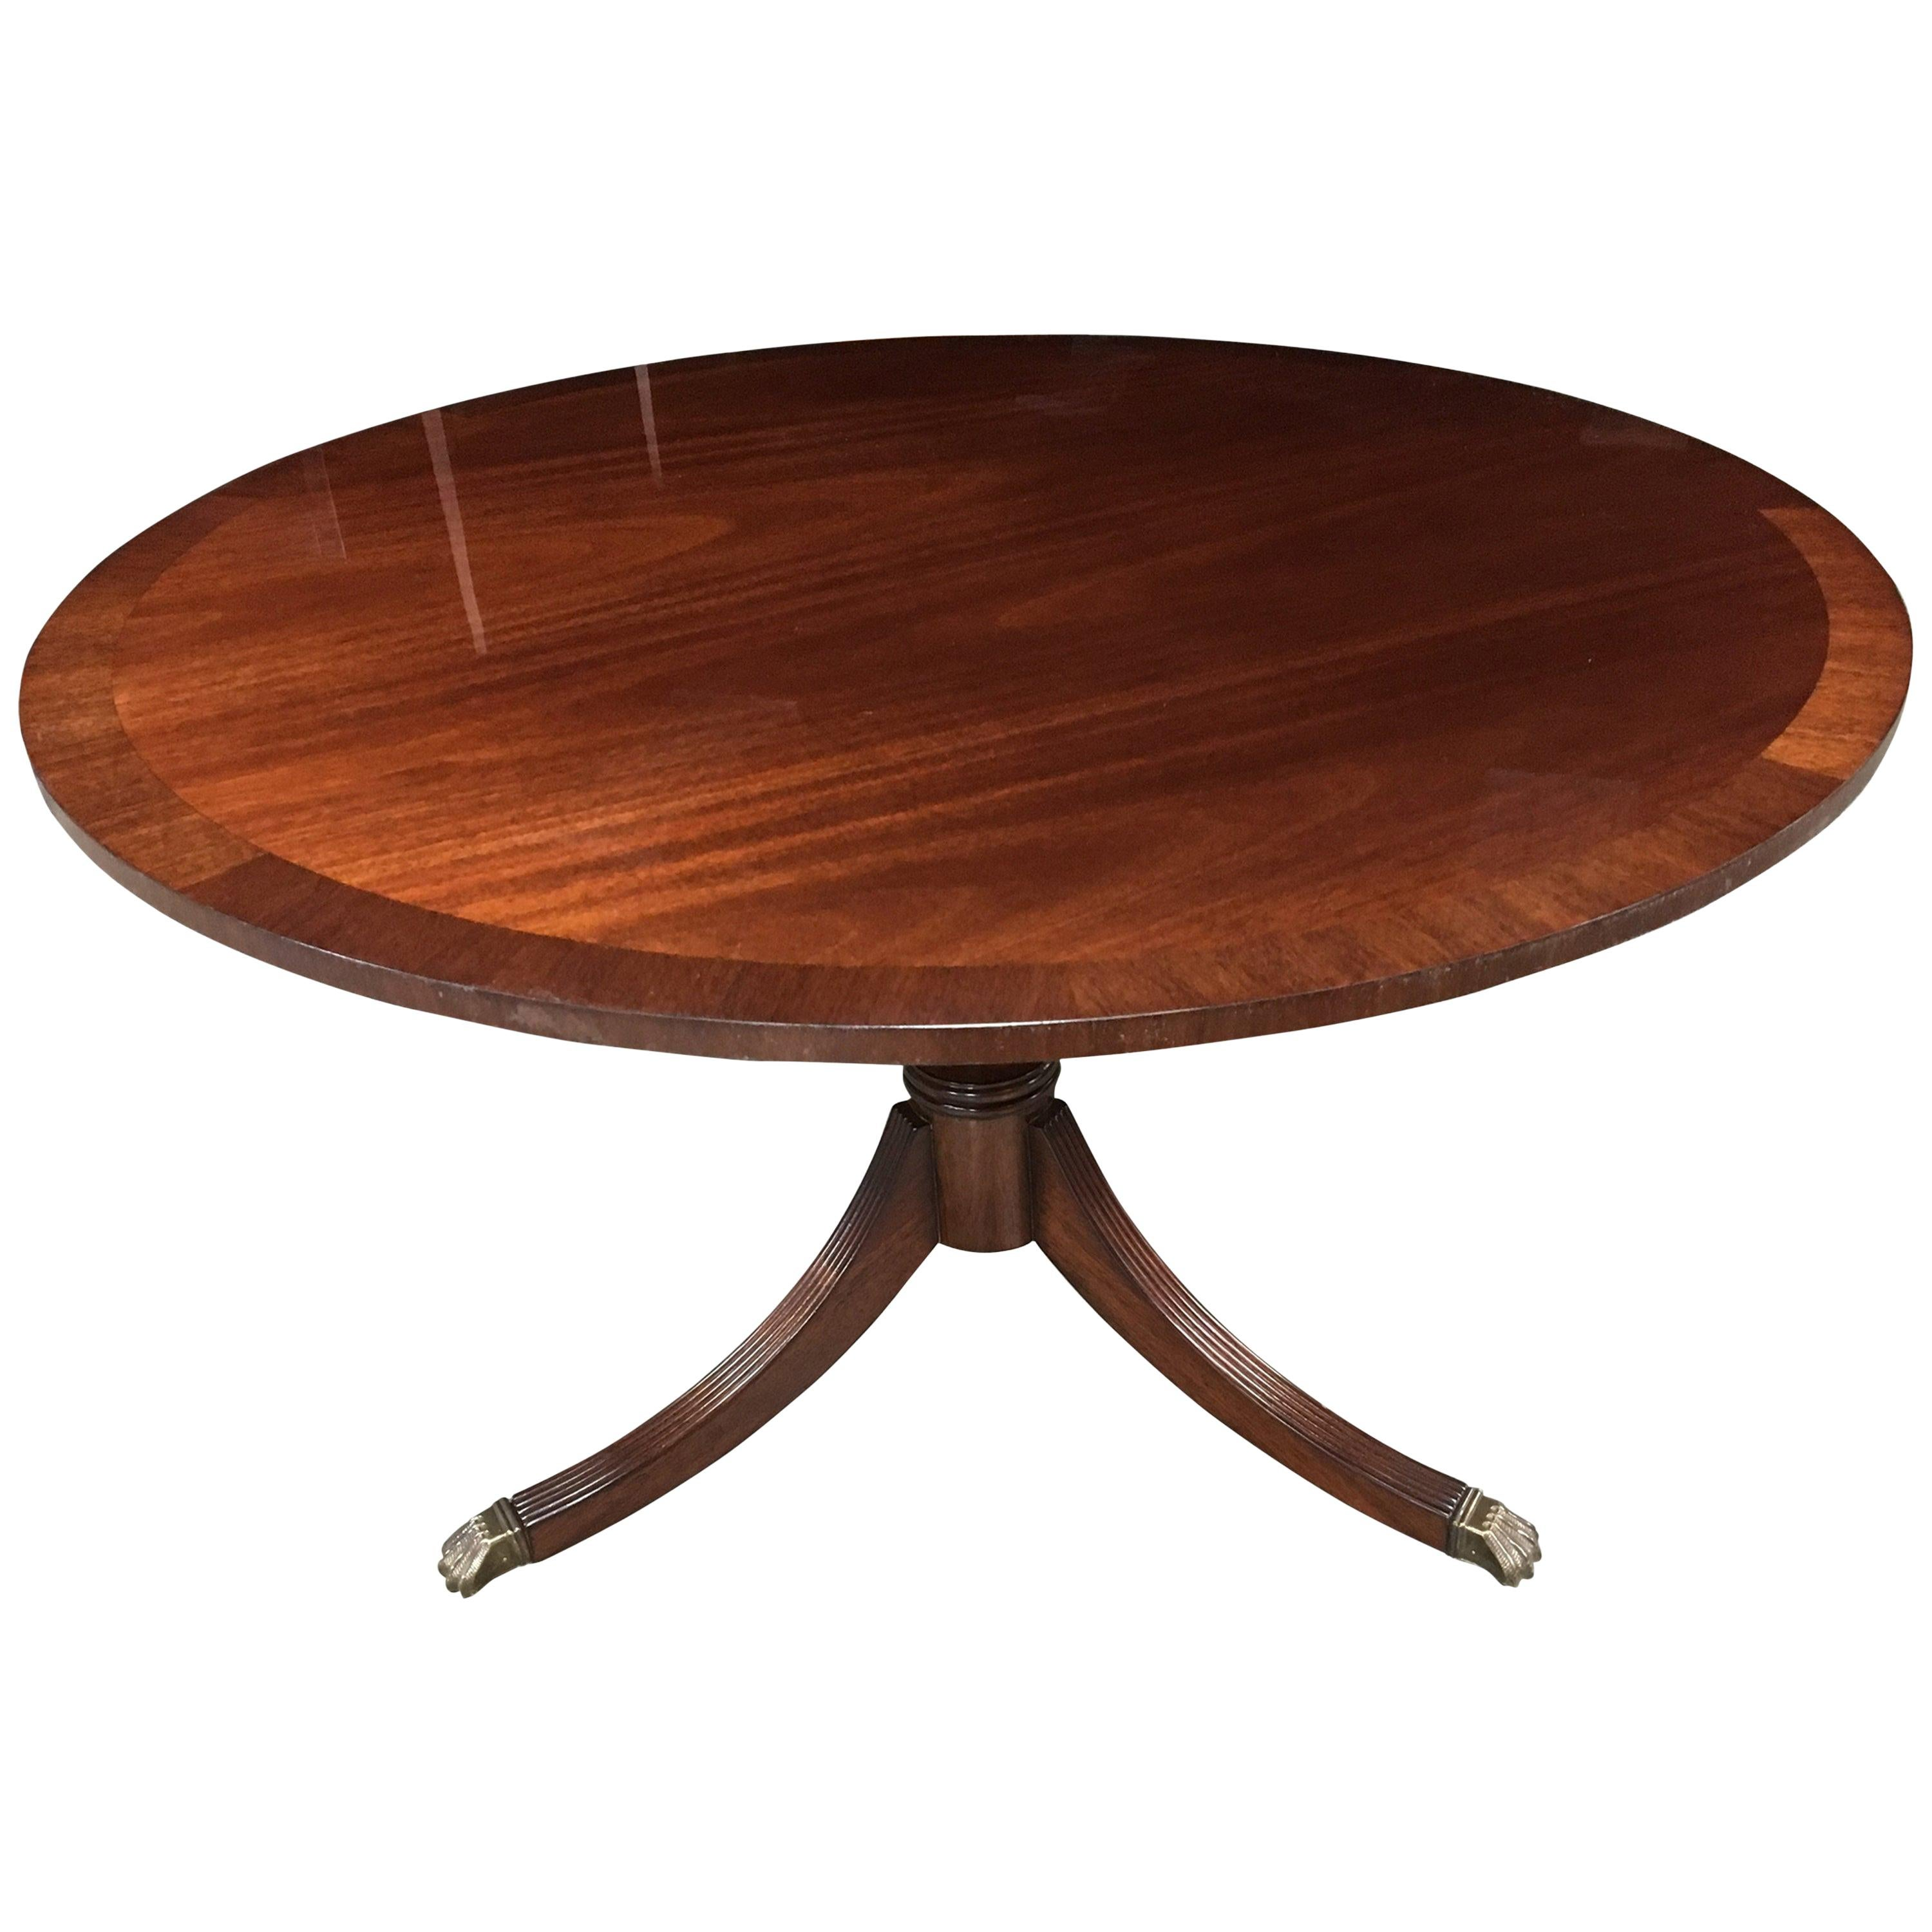 Round Mahogany Georgian Style Accent Foyer Table by Leighton Hall